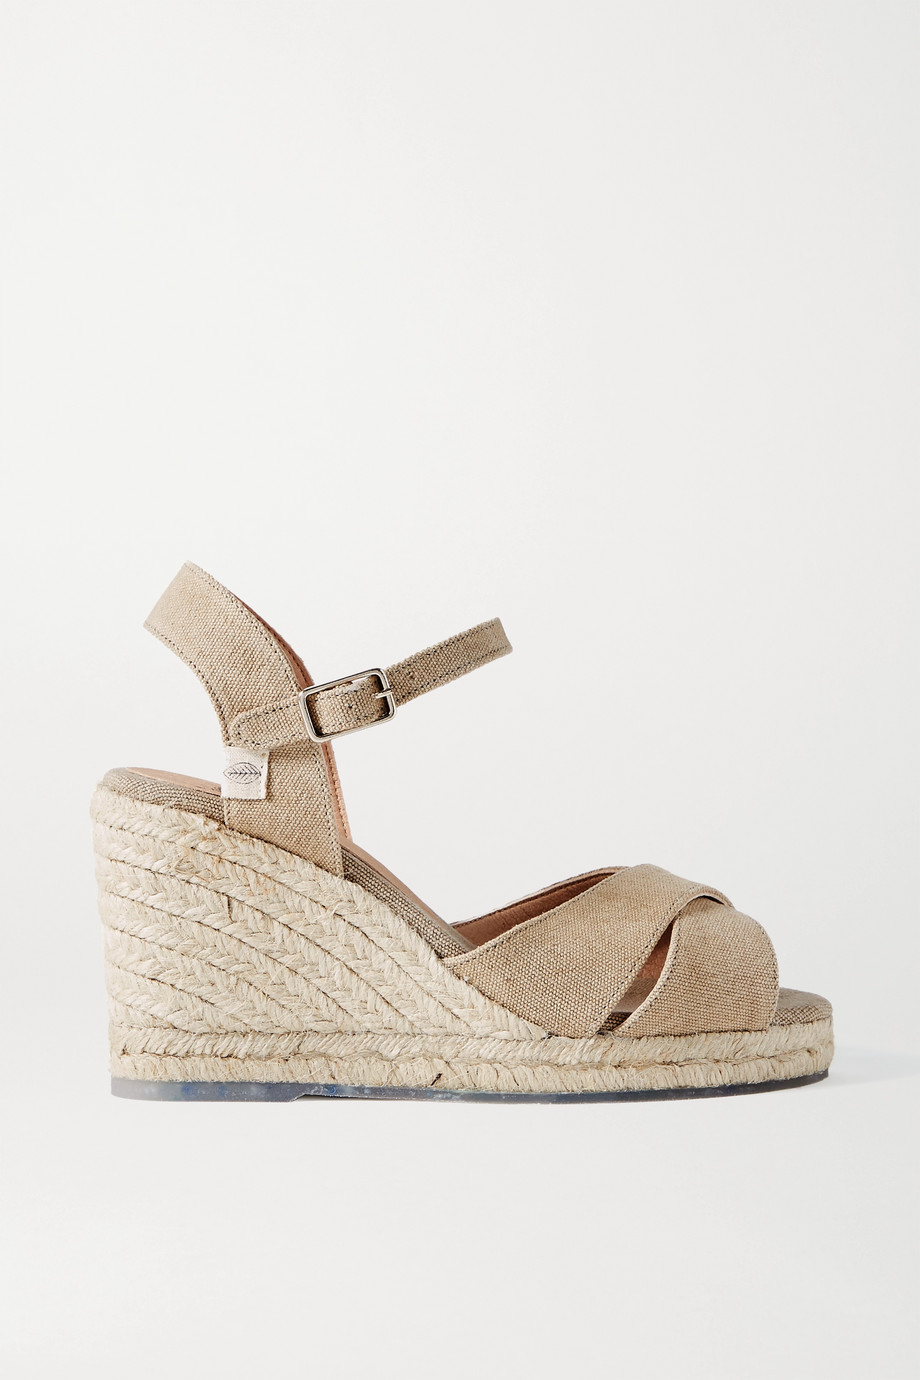 Castañer Blaudell 80 canvas wedge sandals